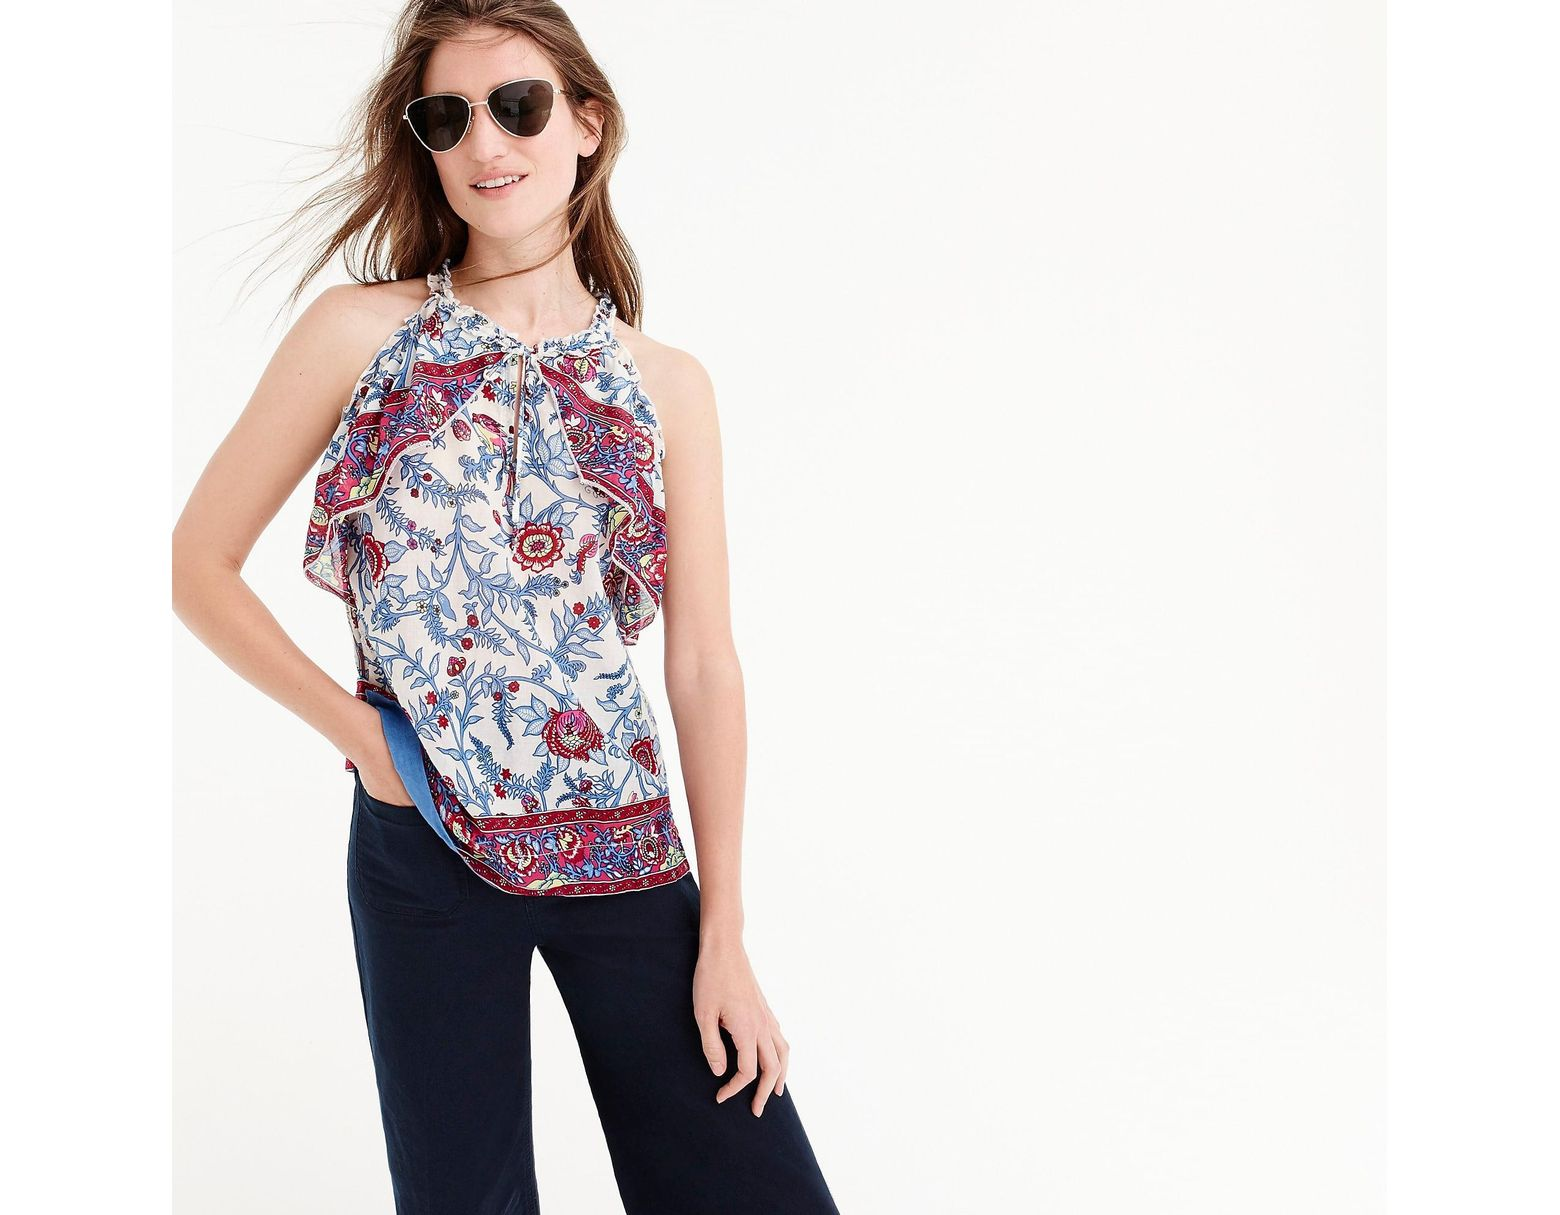 b1c7216e8f98fb J.Crew Point Sur Ruffle Block Print Top in Blue - Lyst